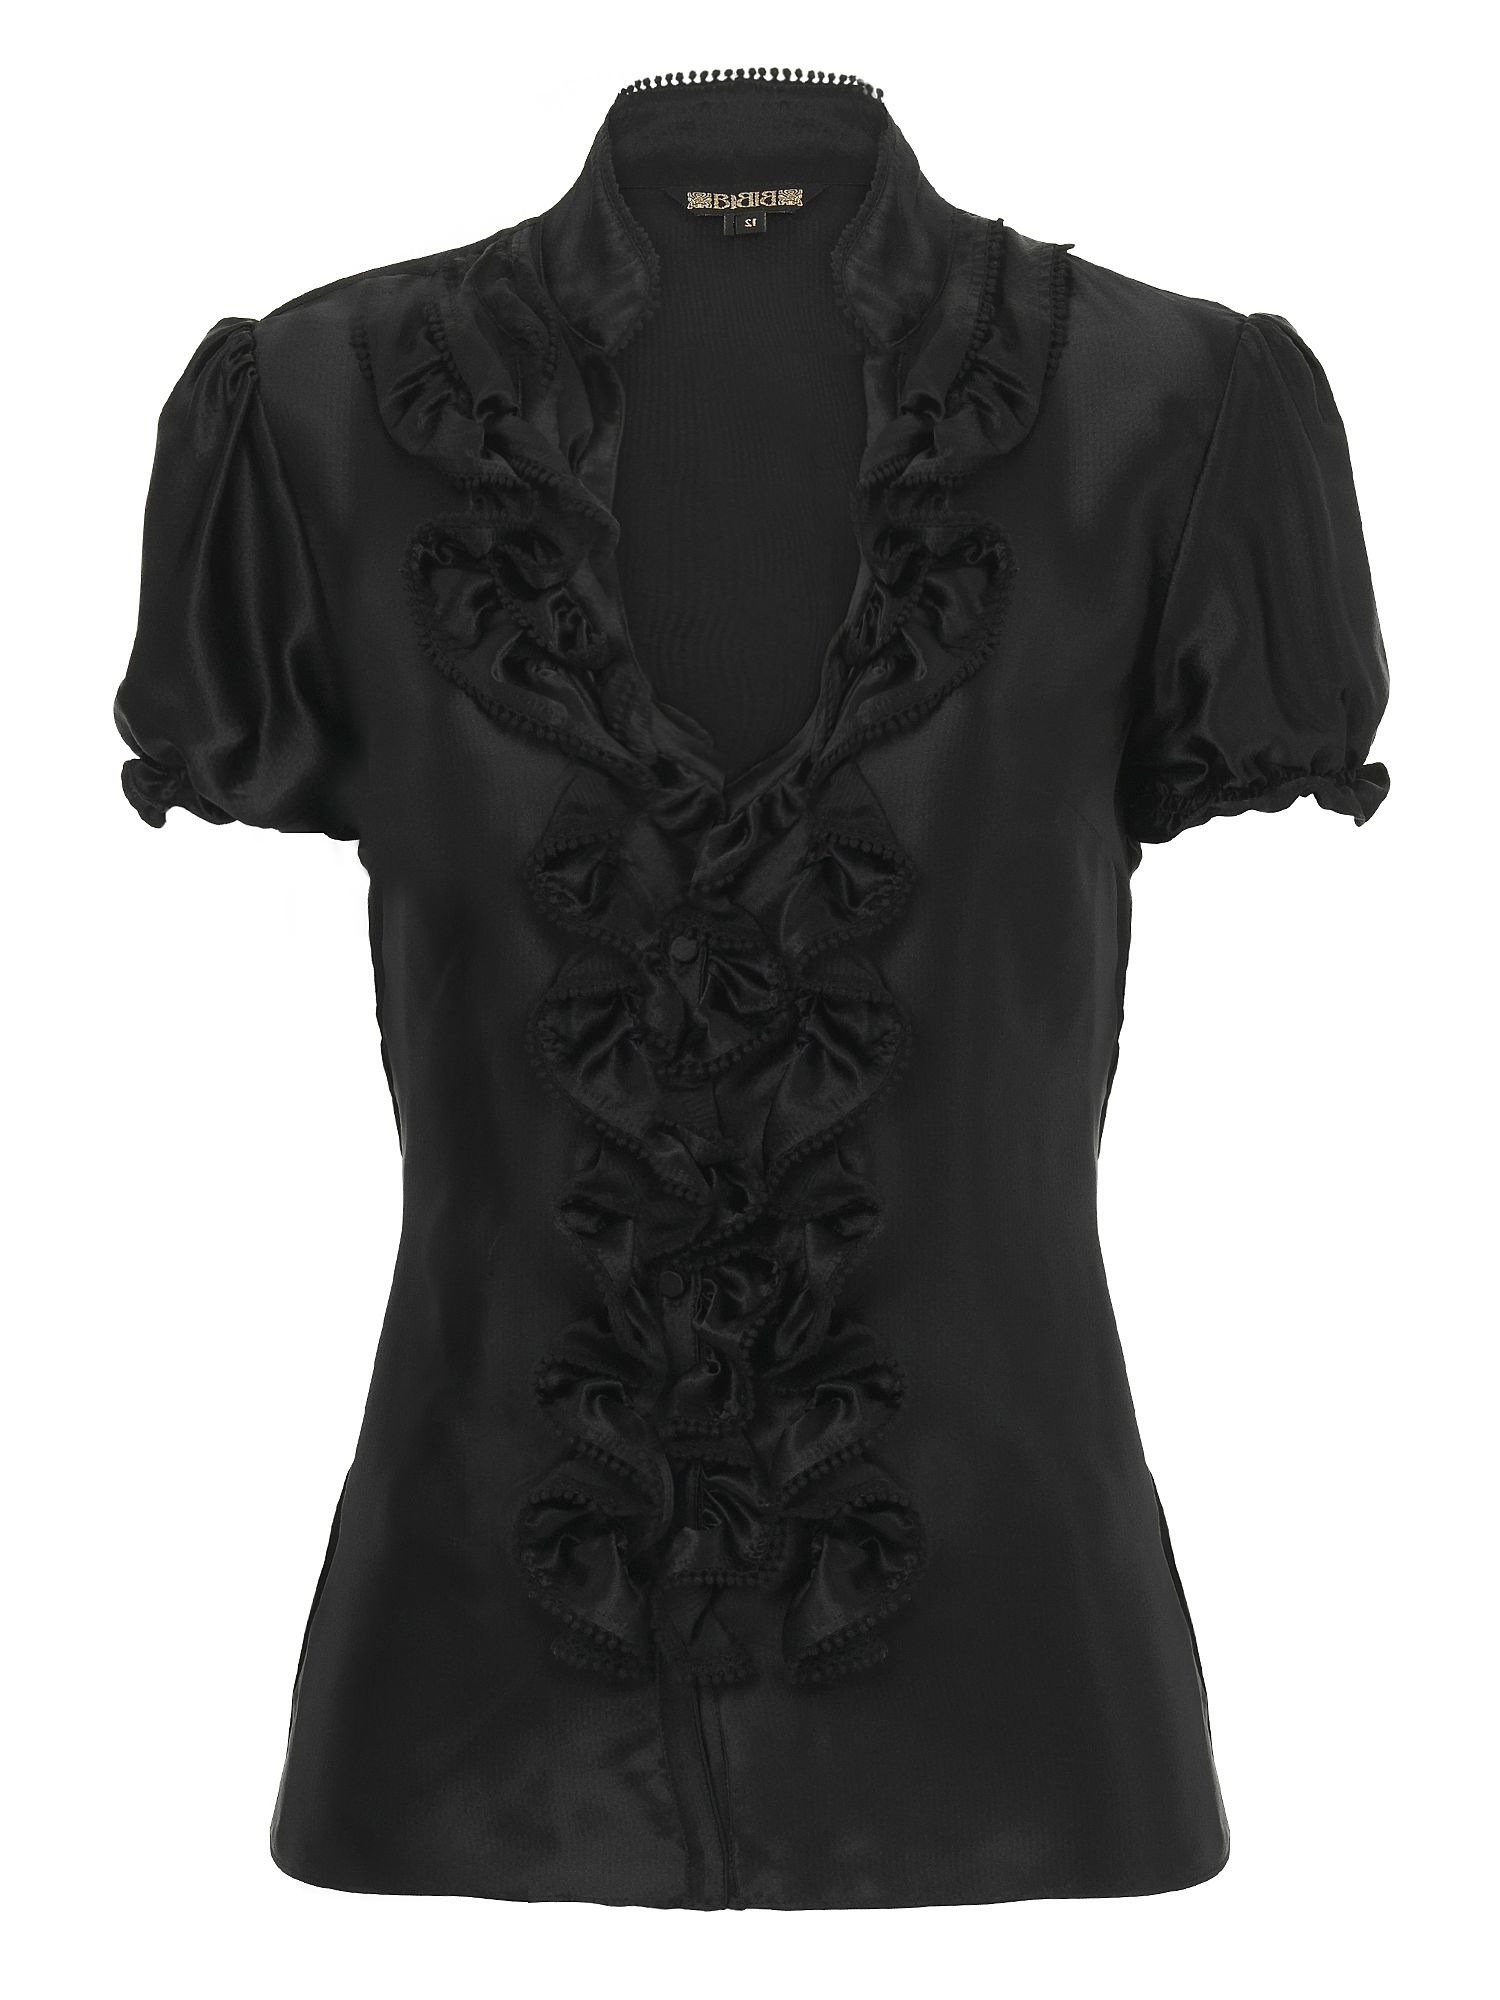 Biba Silk ruffle blouse Black product image